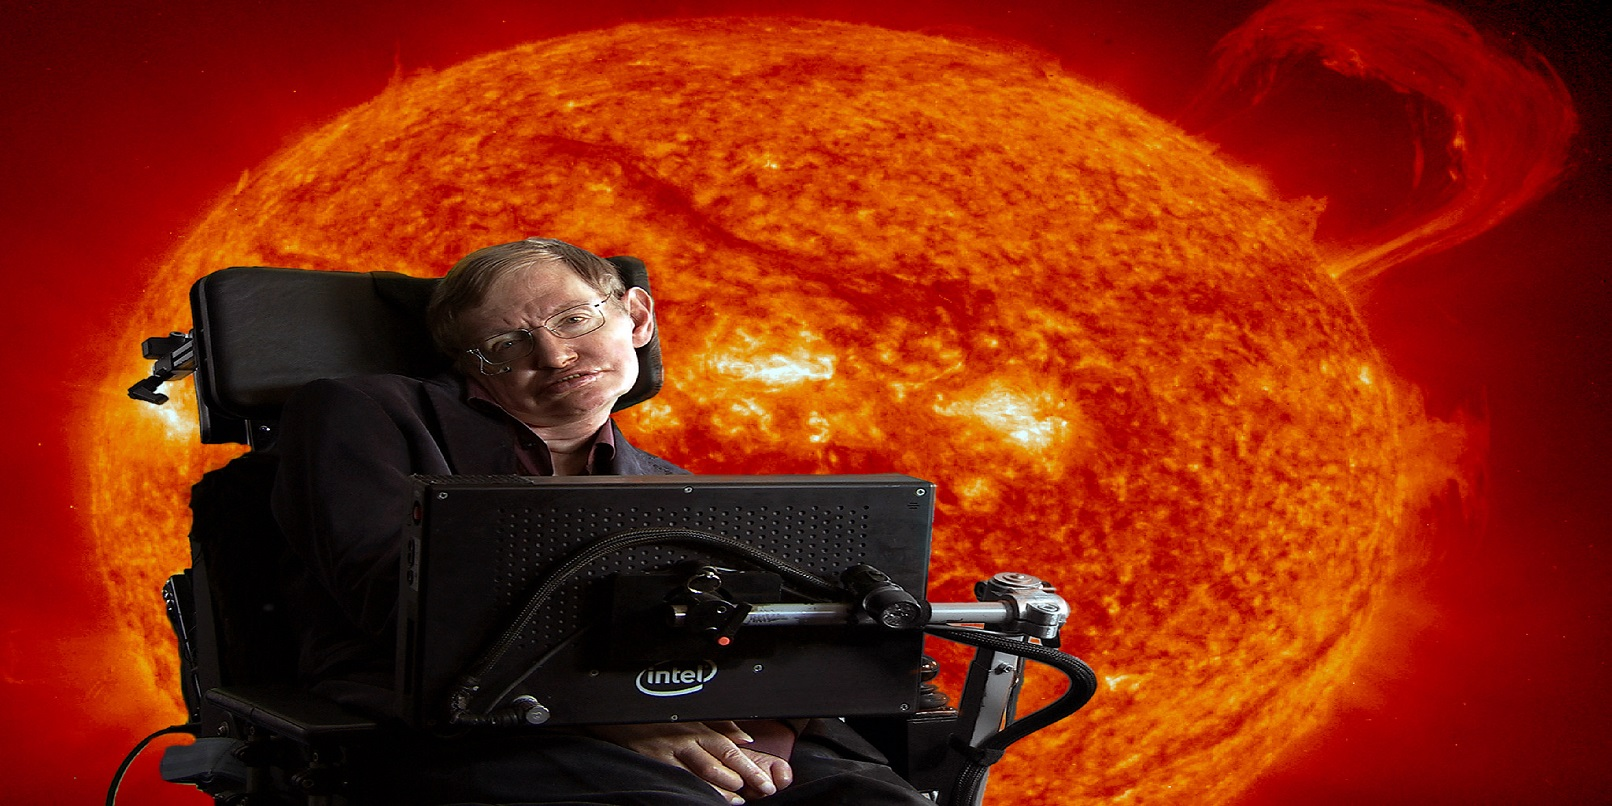 stephen hawking says earth is doomed  it u0026 39 s time to move on